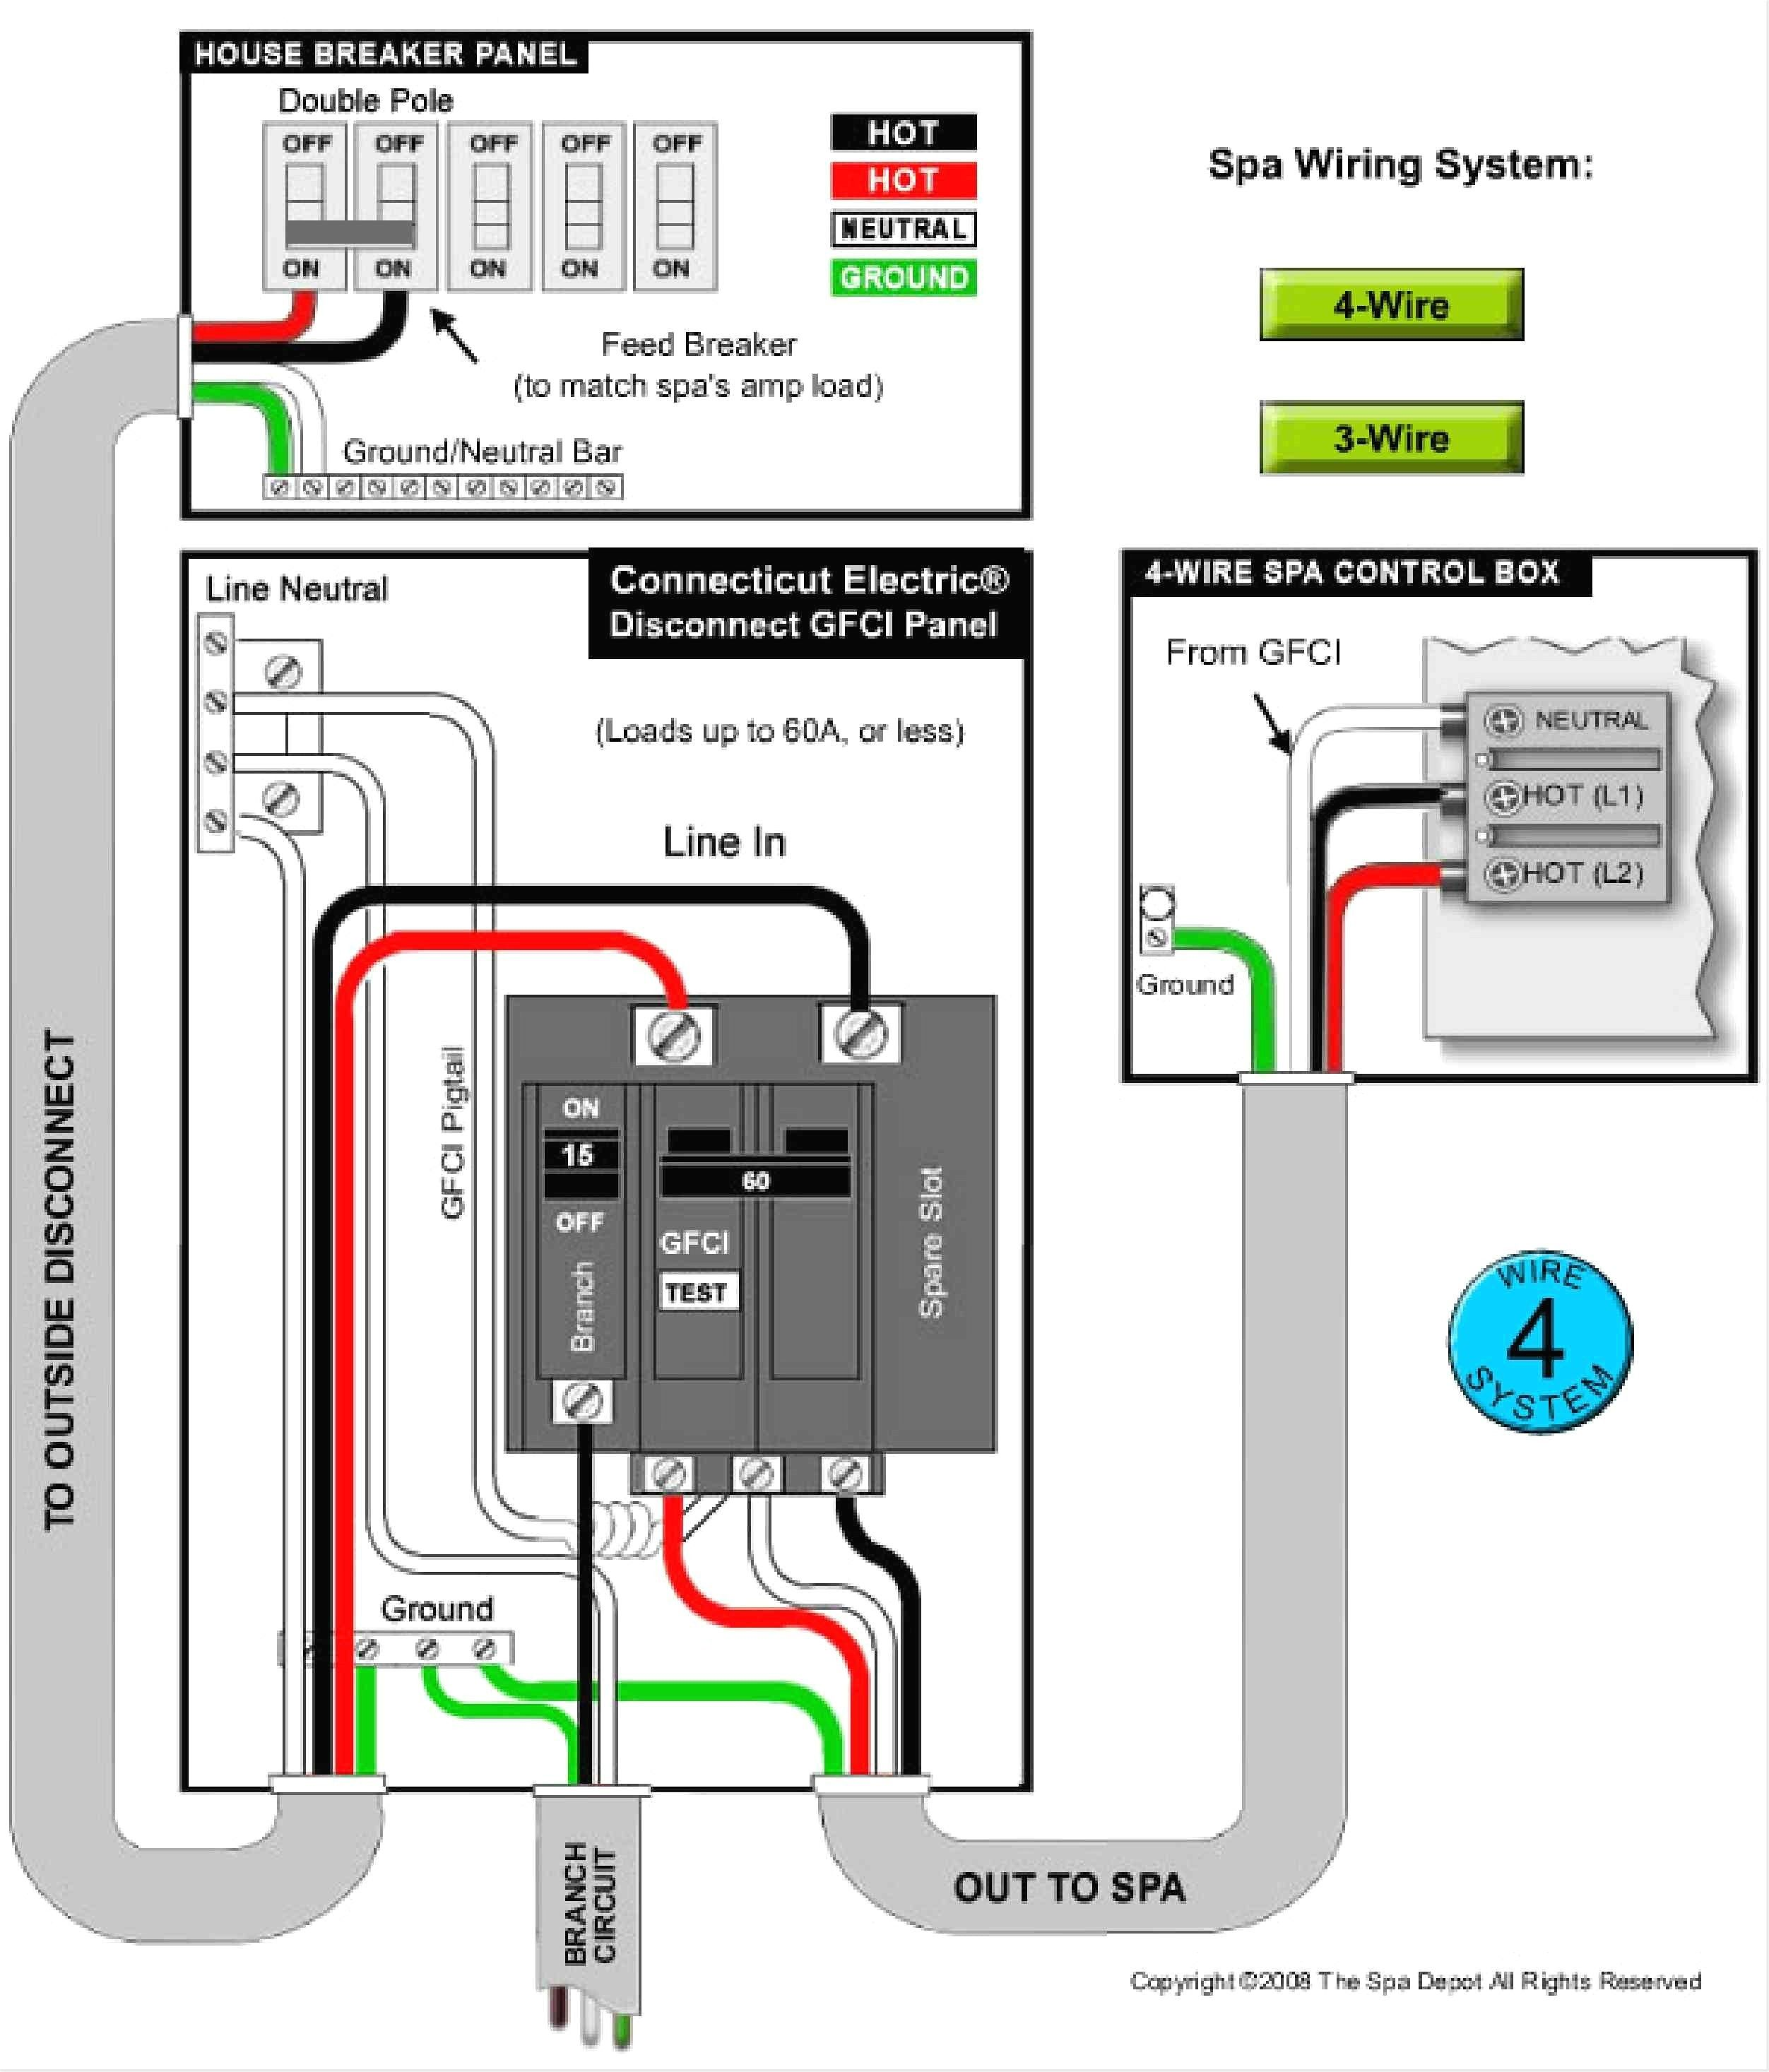 new gfci wiring diagram for hot tub diagram diagramsample evap cooler wiring diagram connecticut electric spa wiring diagram #1